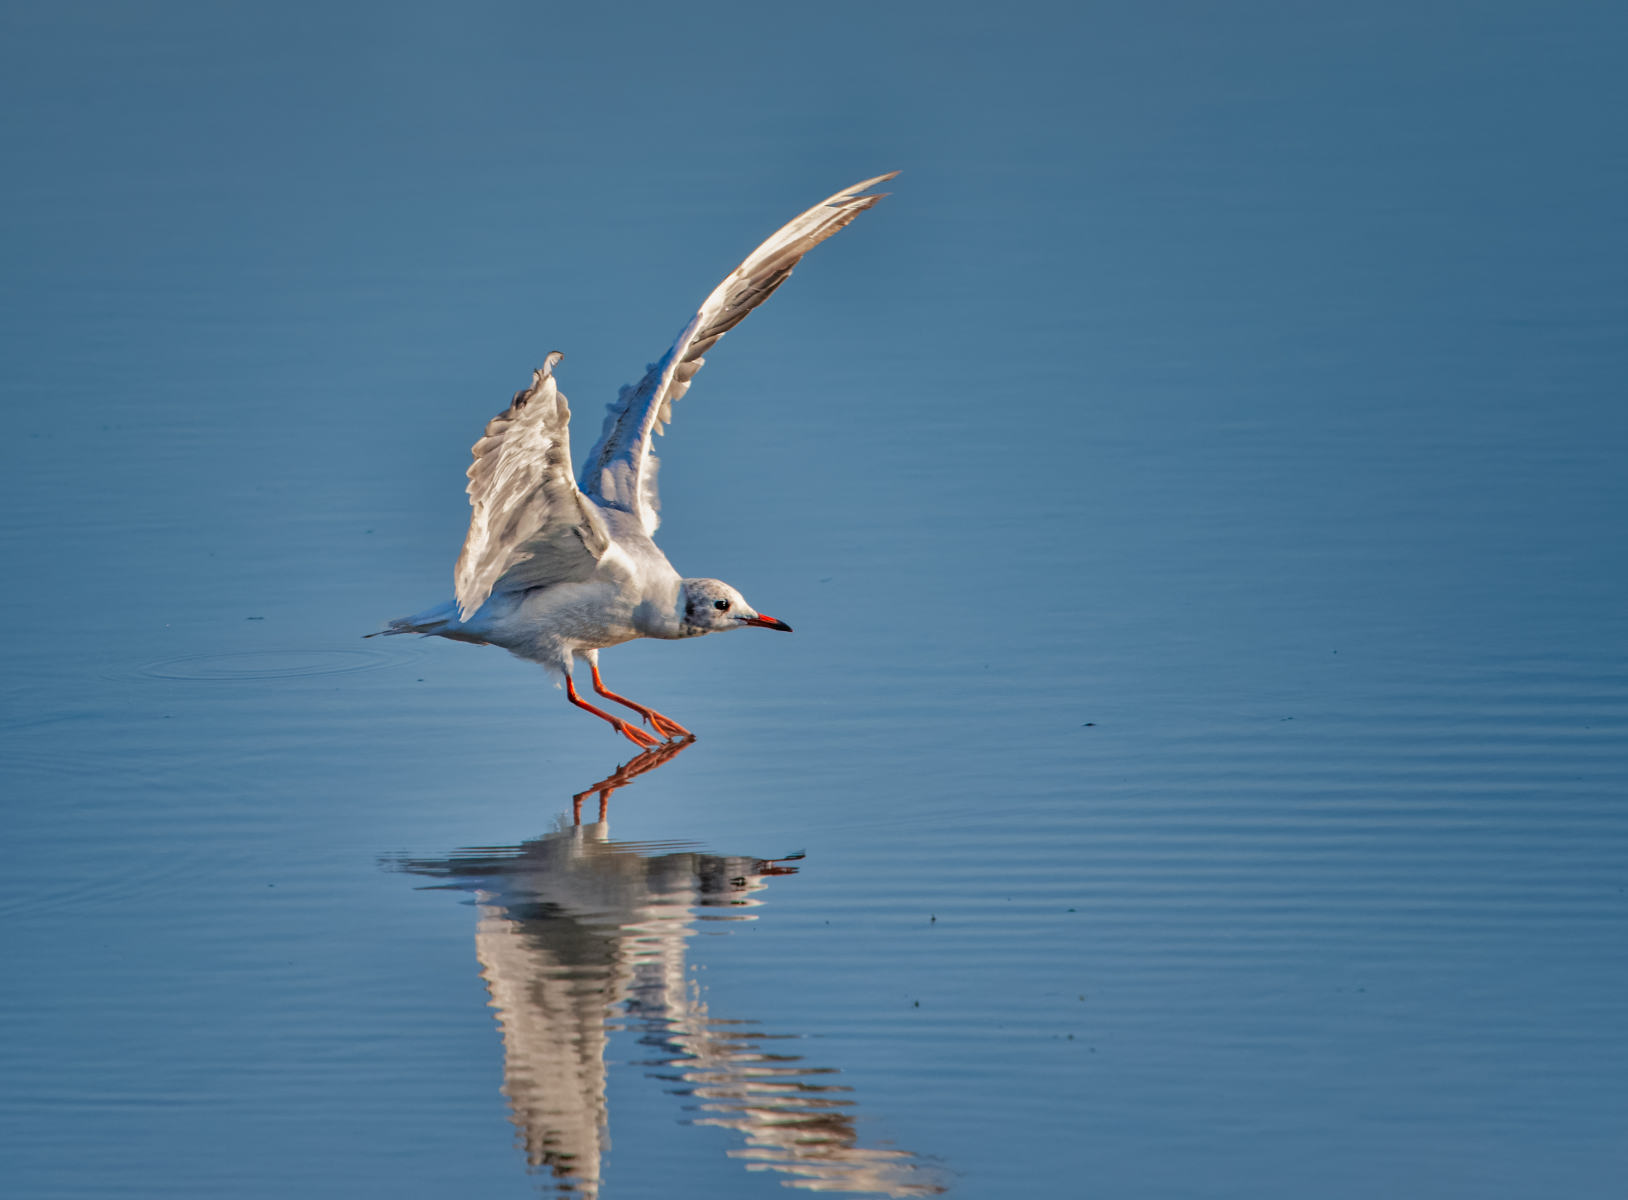 black-headed gull gently touching down on water